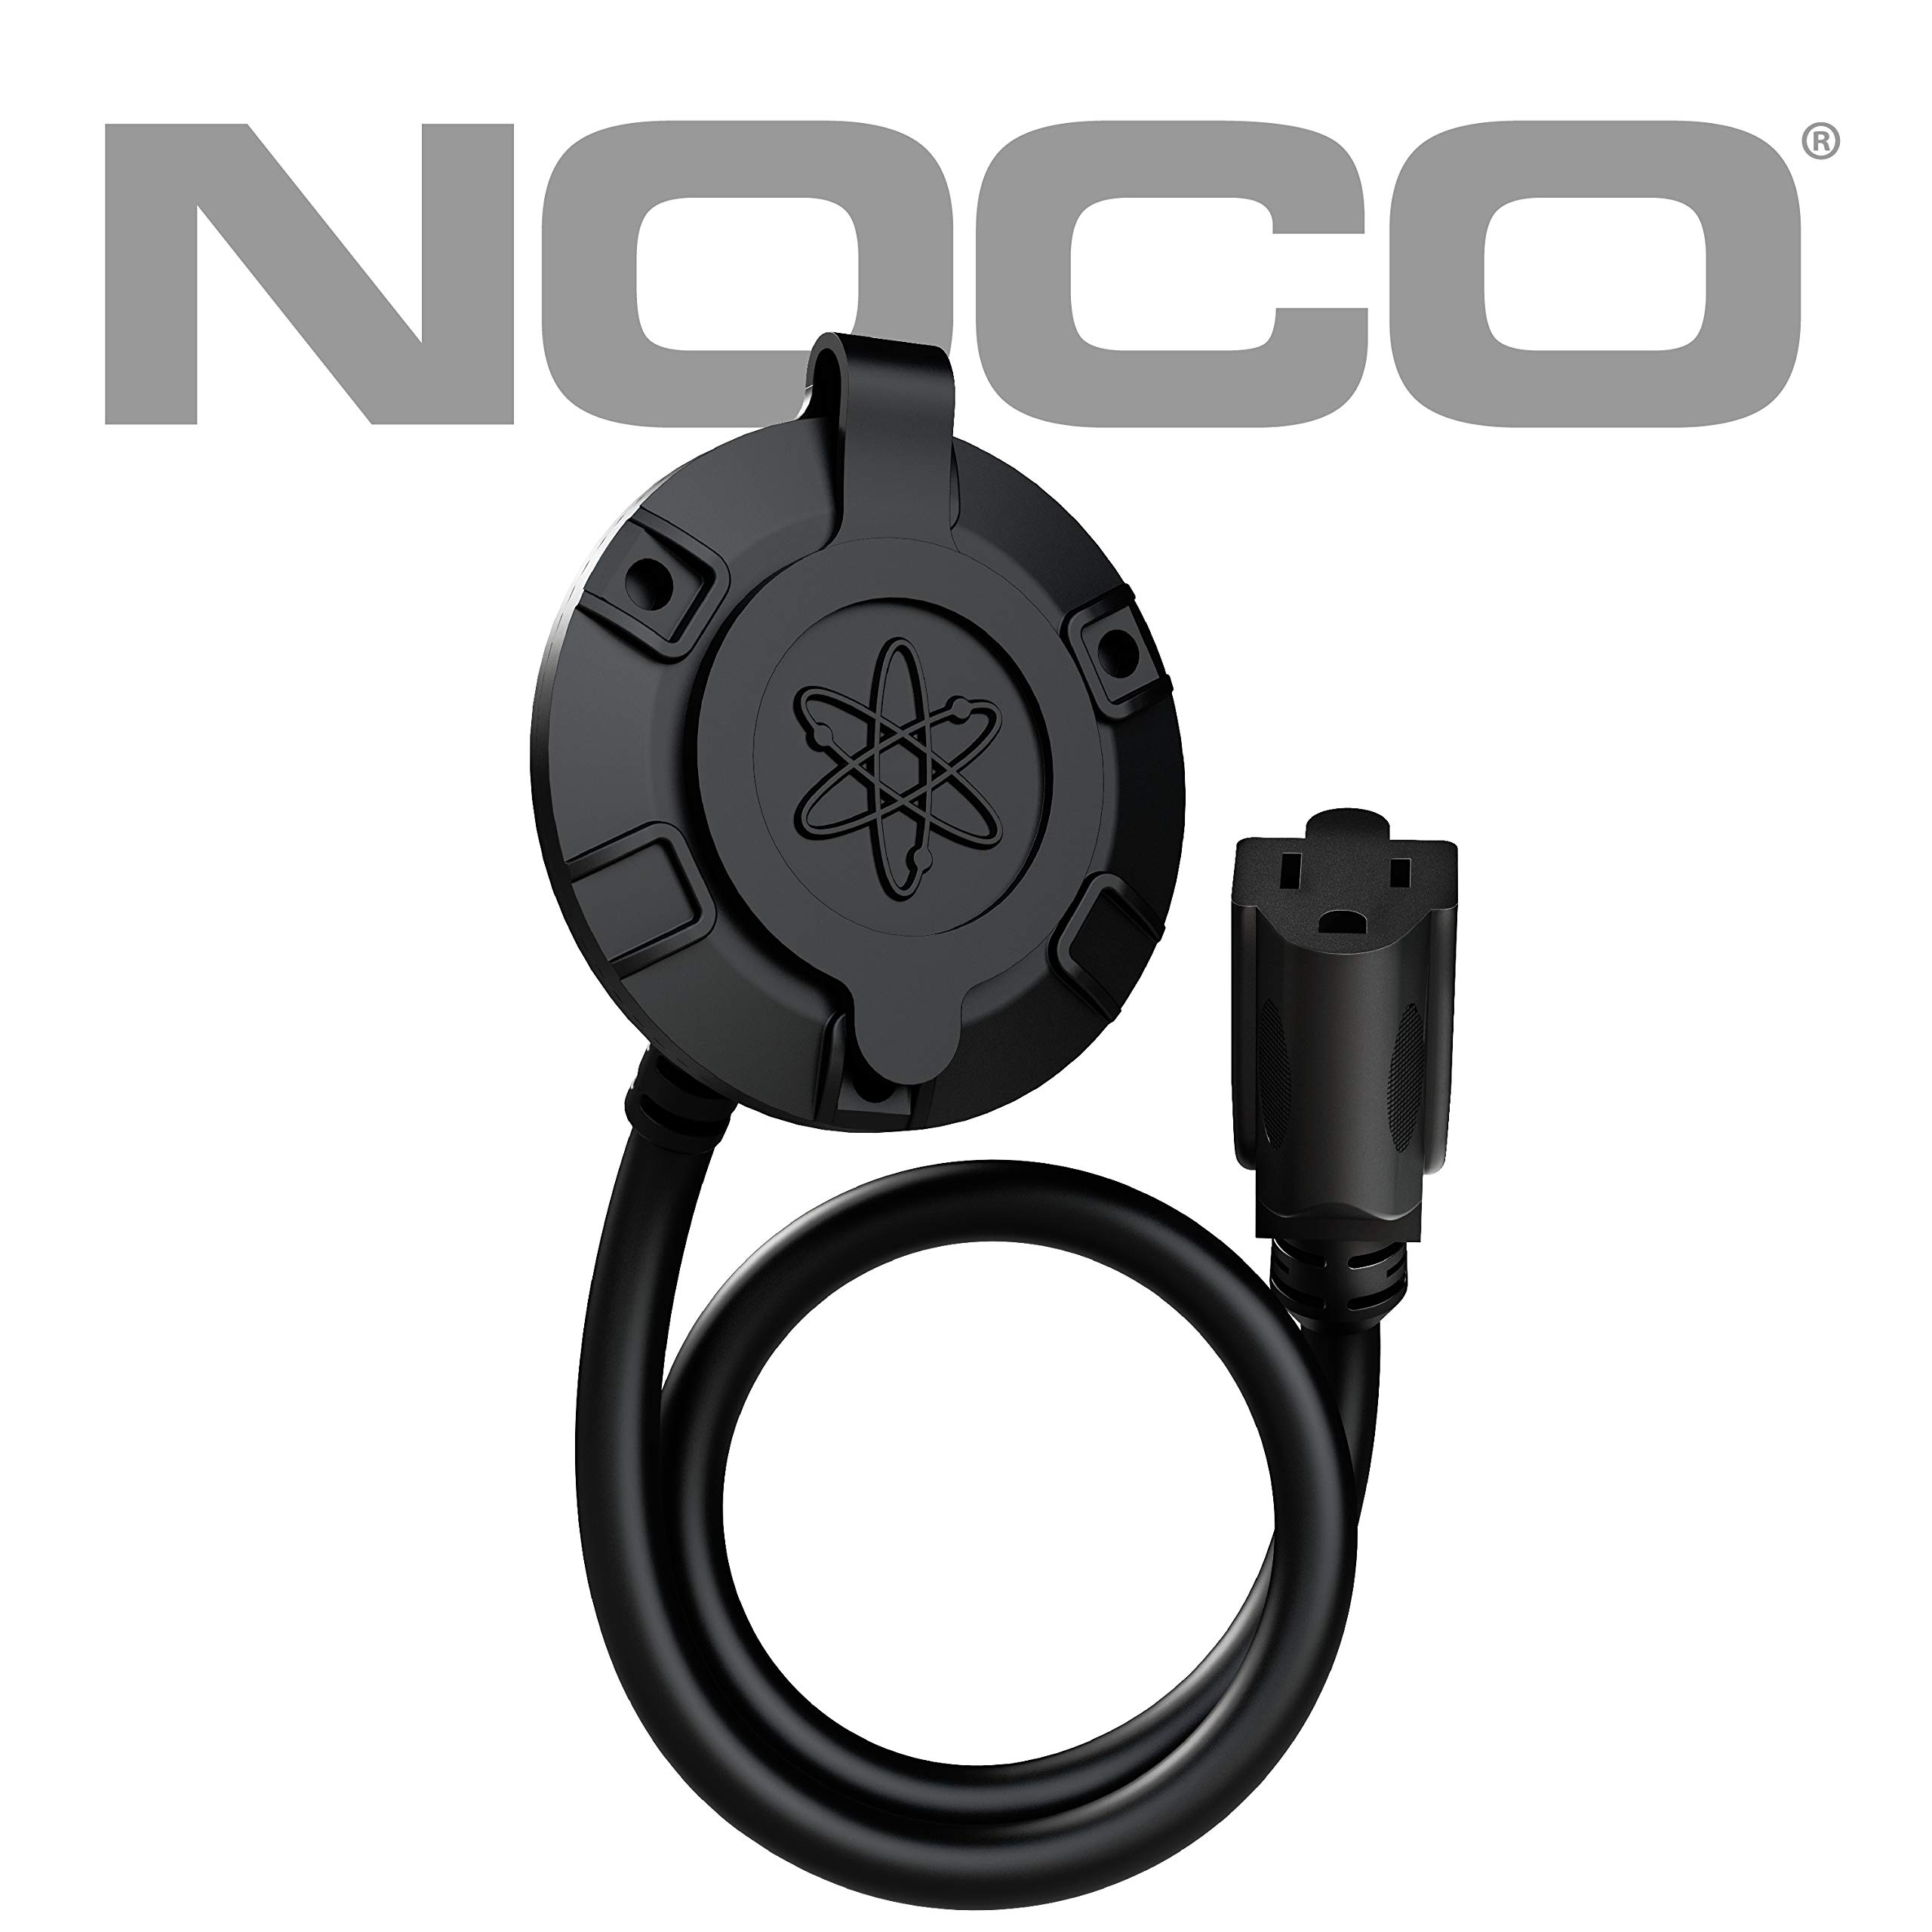 NOCO GCP1 13 Amp 125V AC Port Plug with 16-Inch Integrated Extension Cord by NOCO